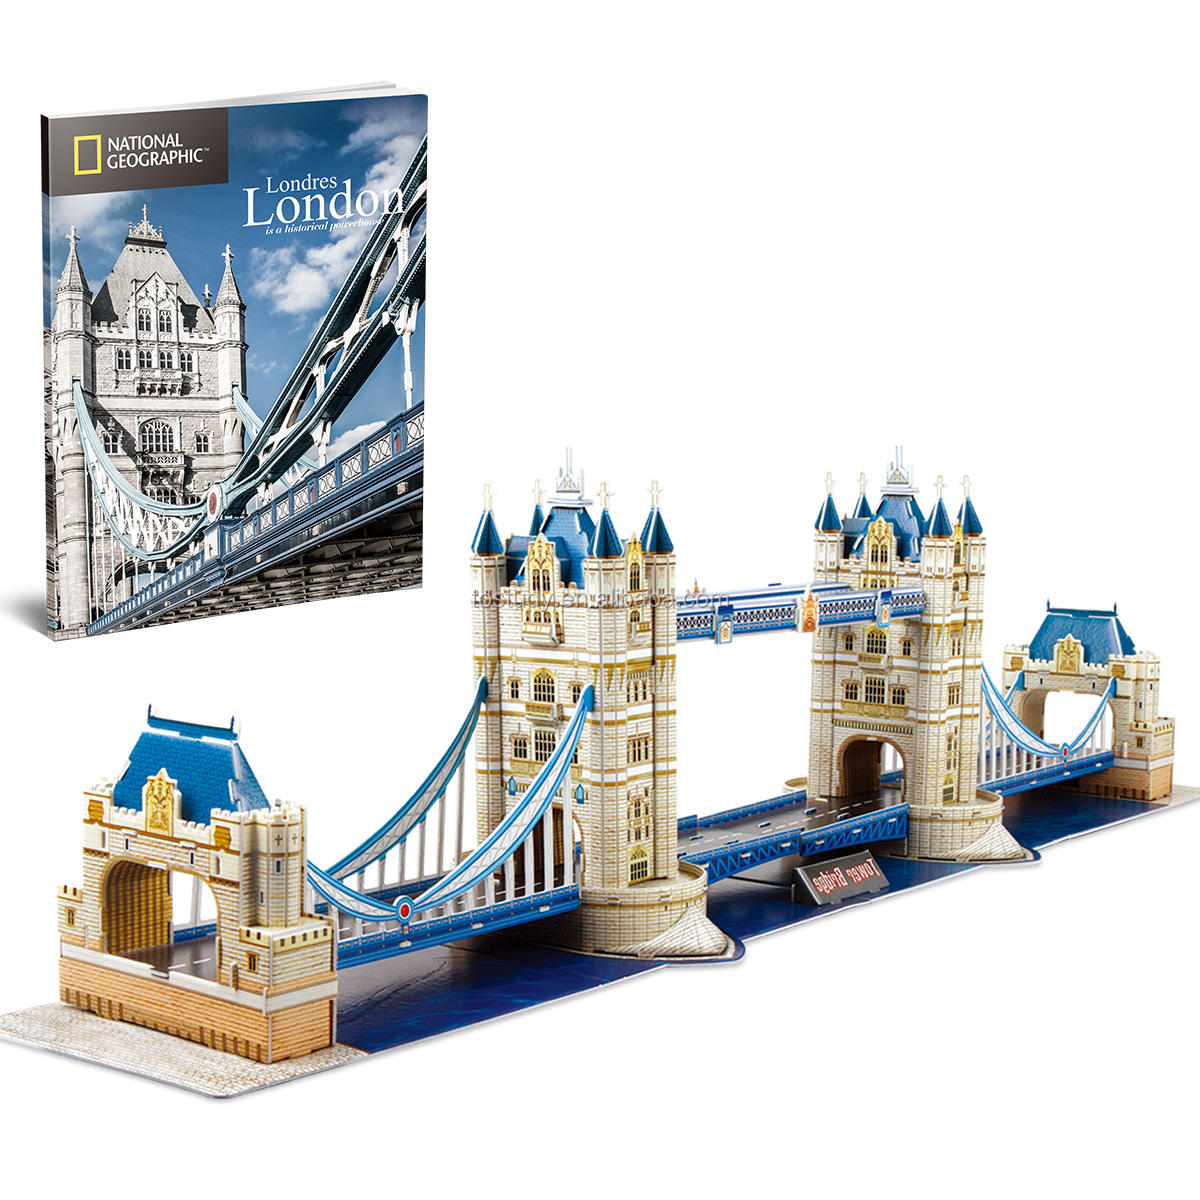 Tostudy Paper Puzzle London Twin Bridge Model Kit with LEDs 3D Puzzle Toys for Kids